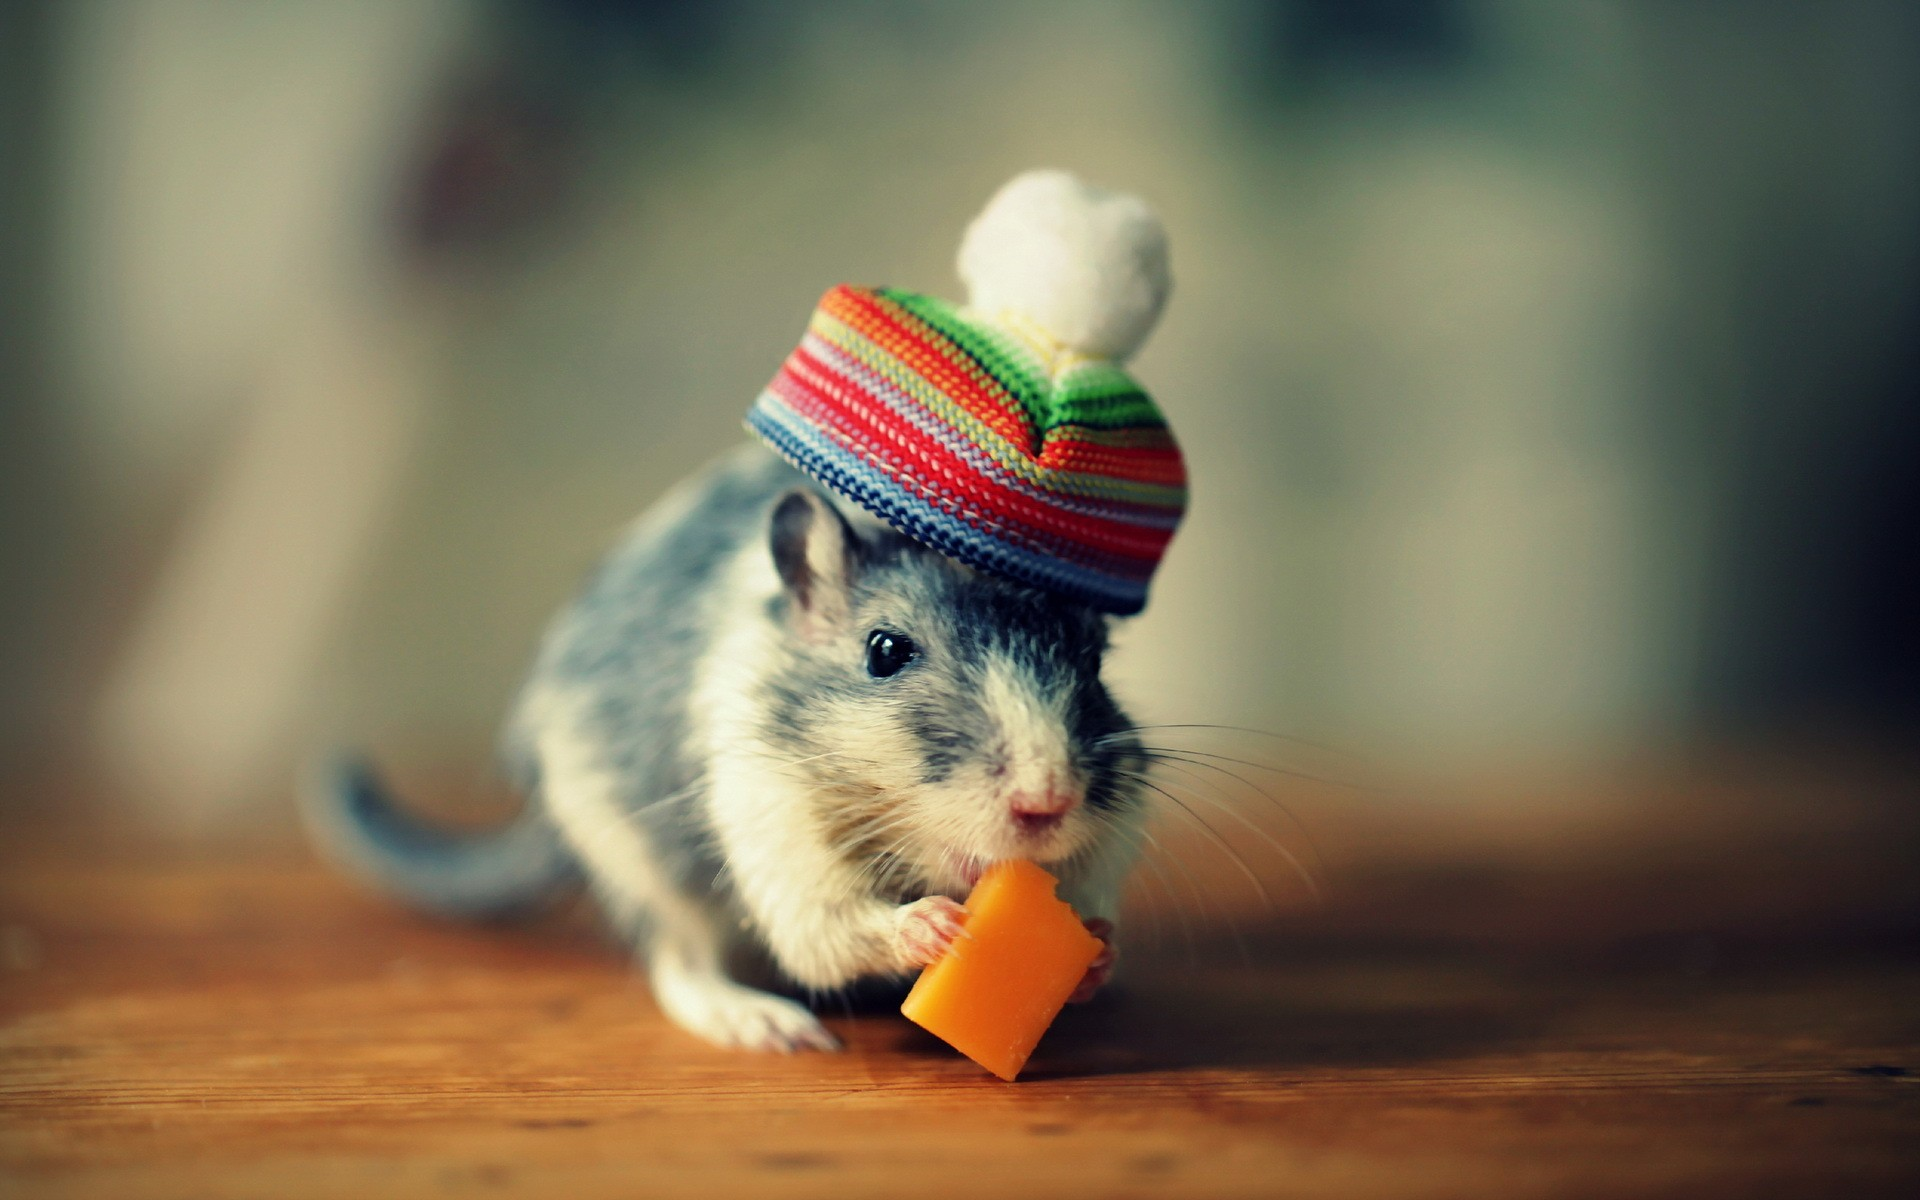 cute-mouse-funny-hat-hd-wallpaper-63921752